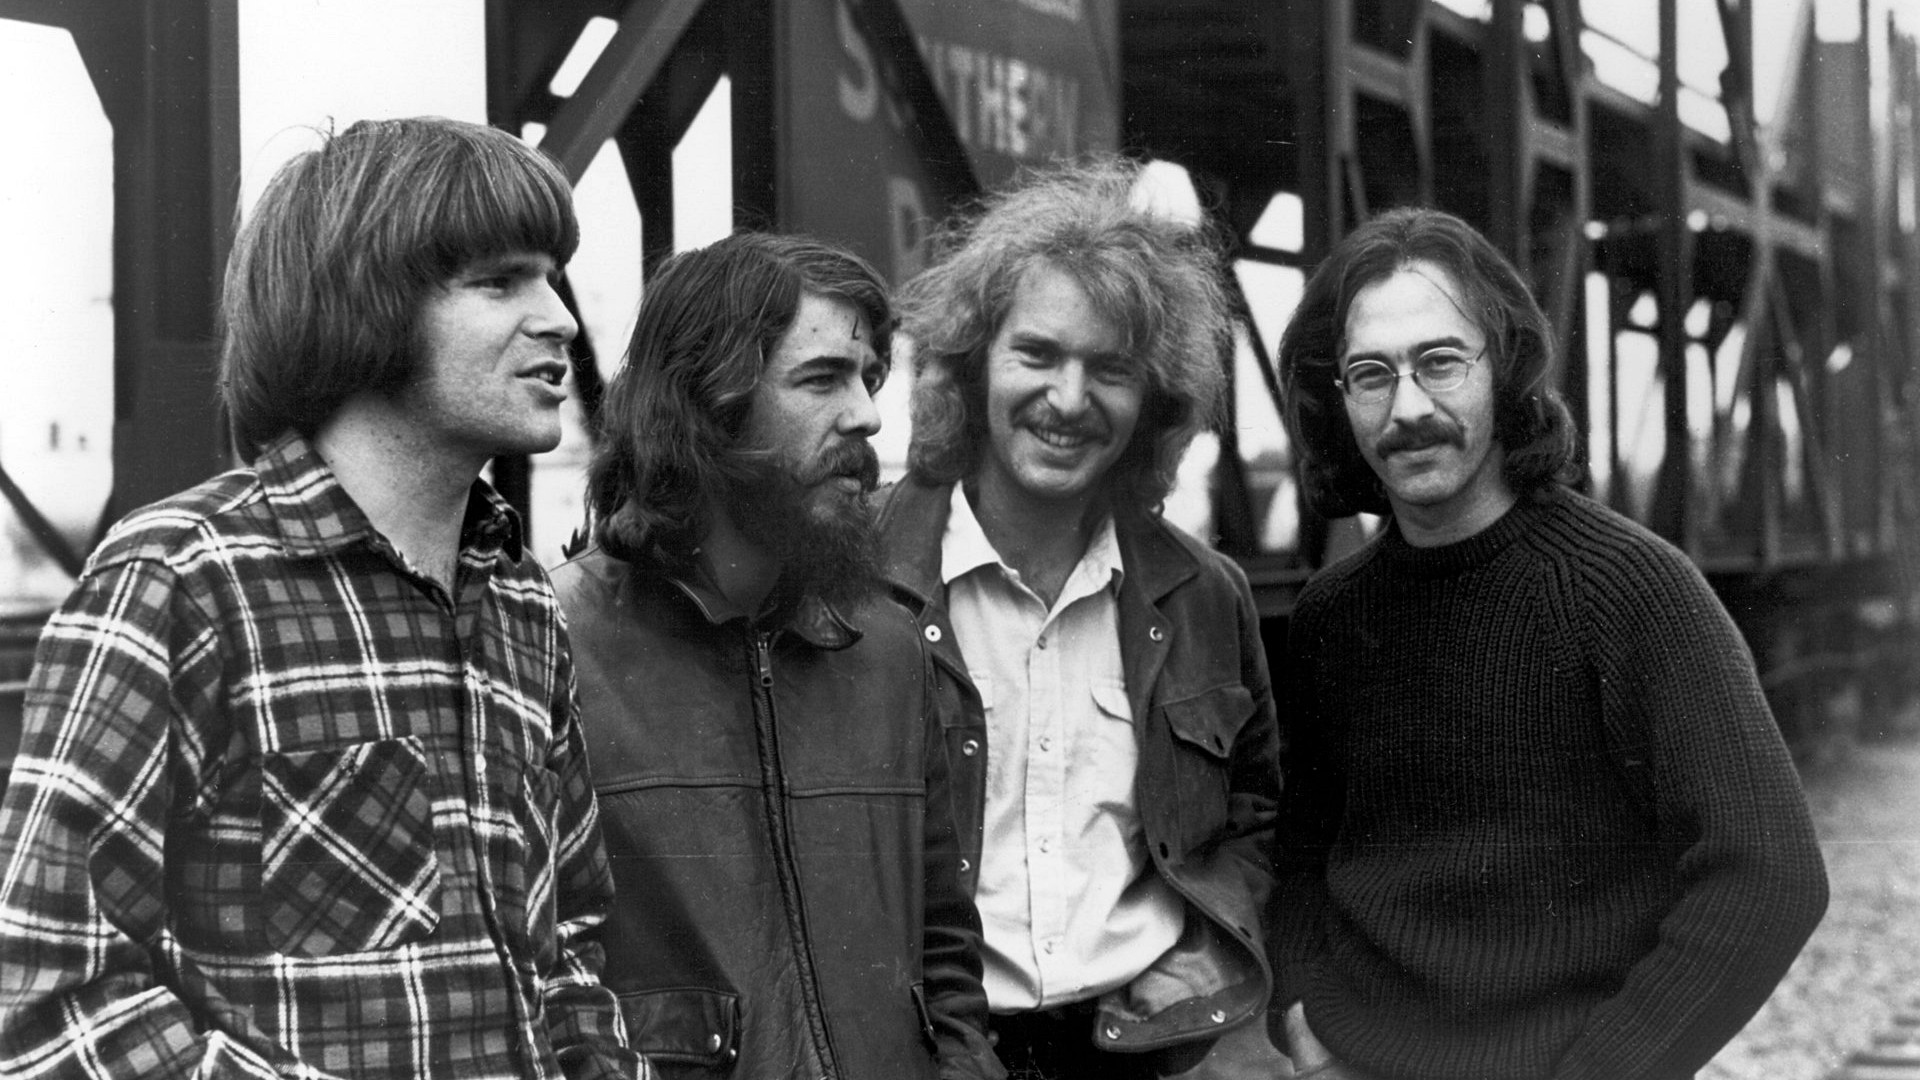 Fortunate Son av Creedence Clearwater Revival